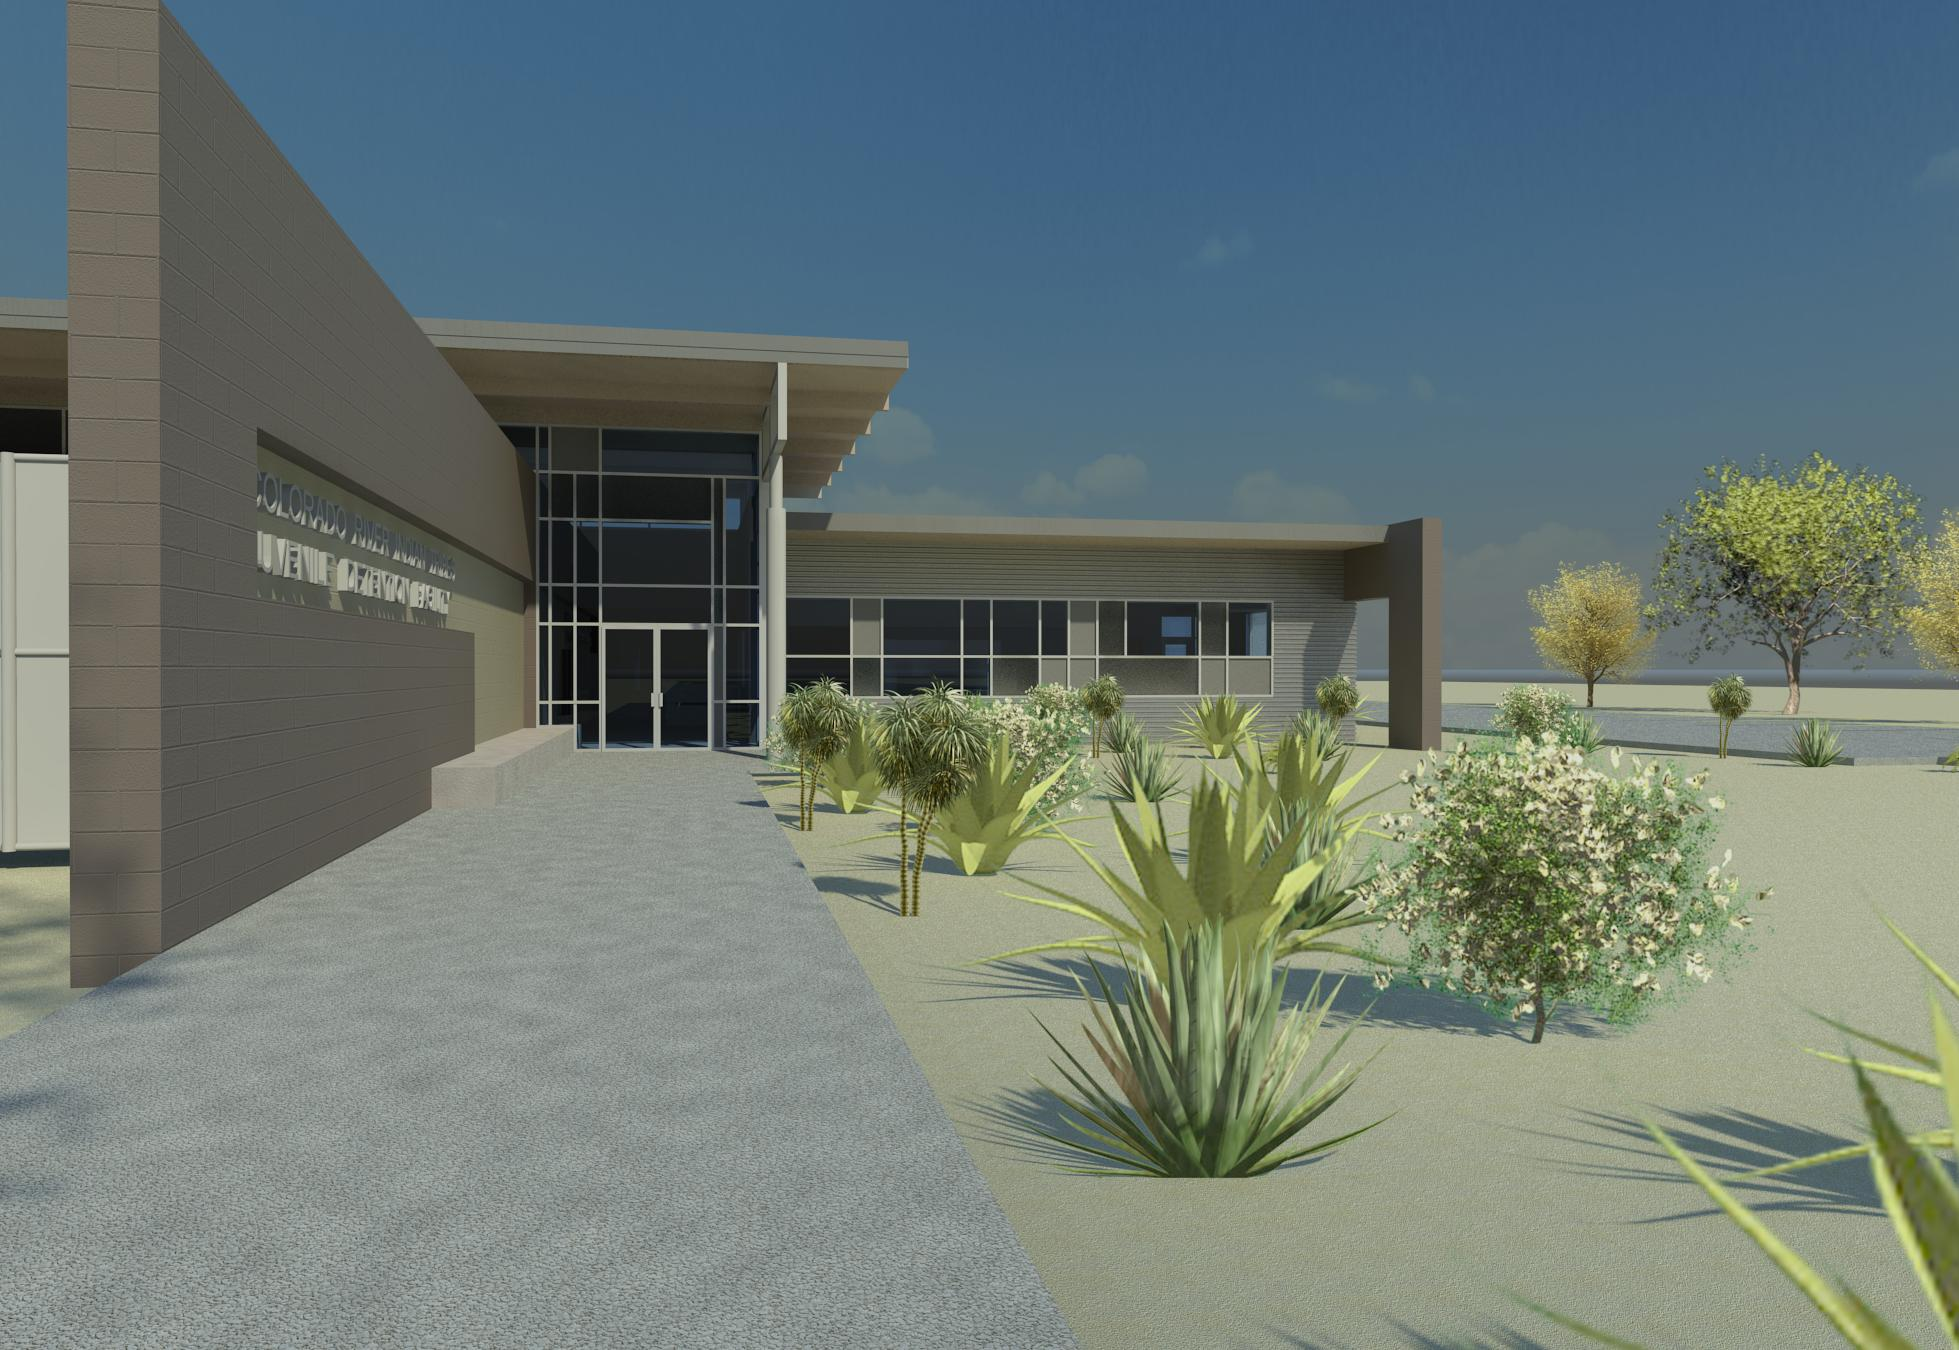 3D Exterior from Main Entry v2.jpg